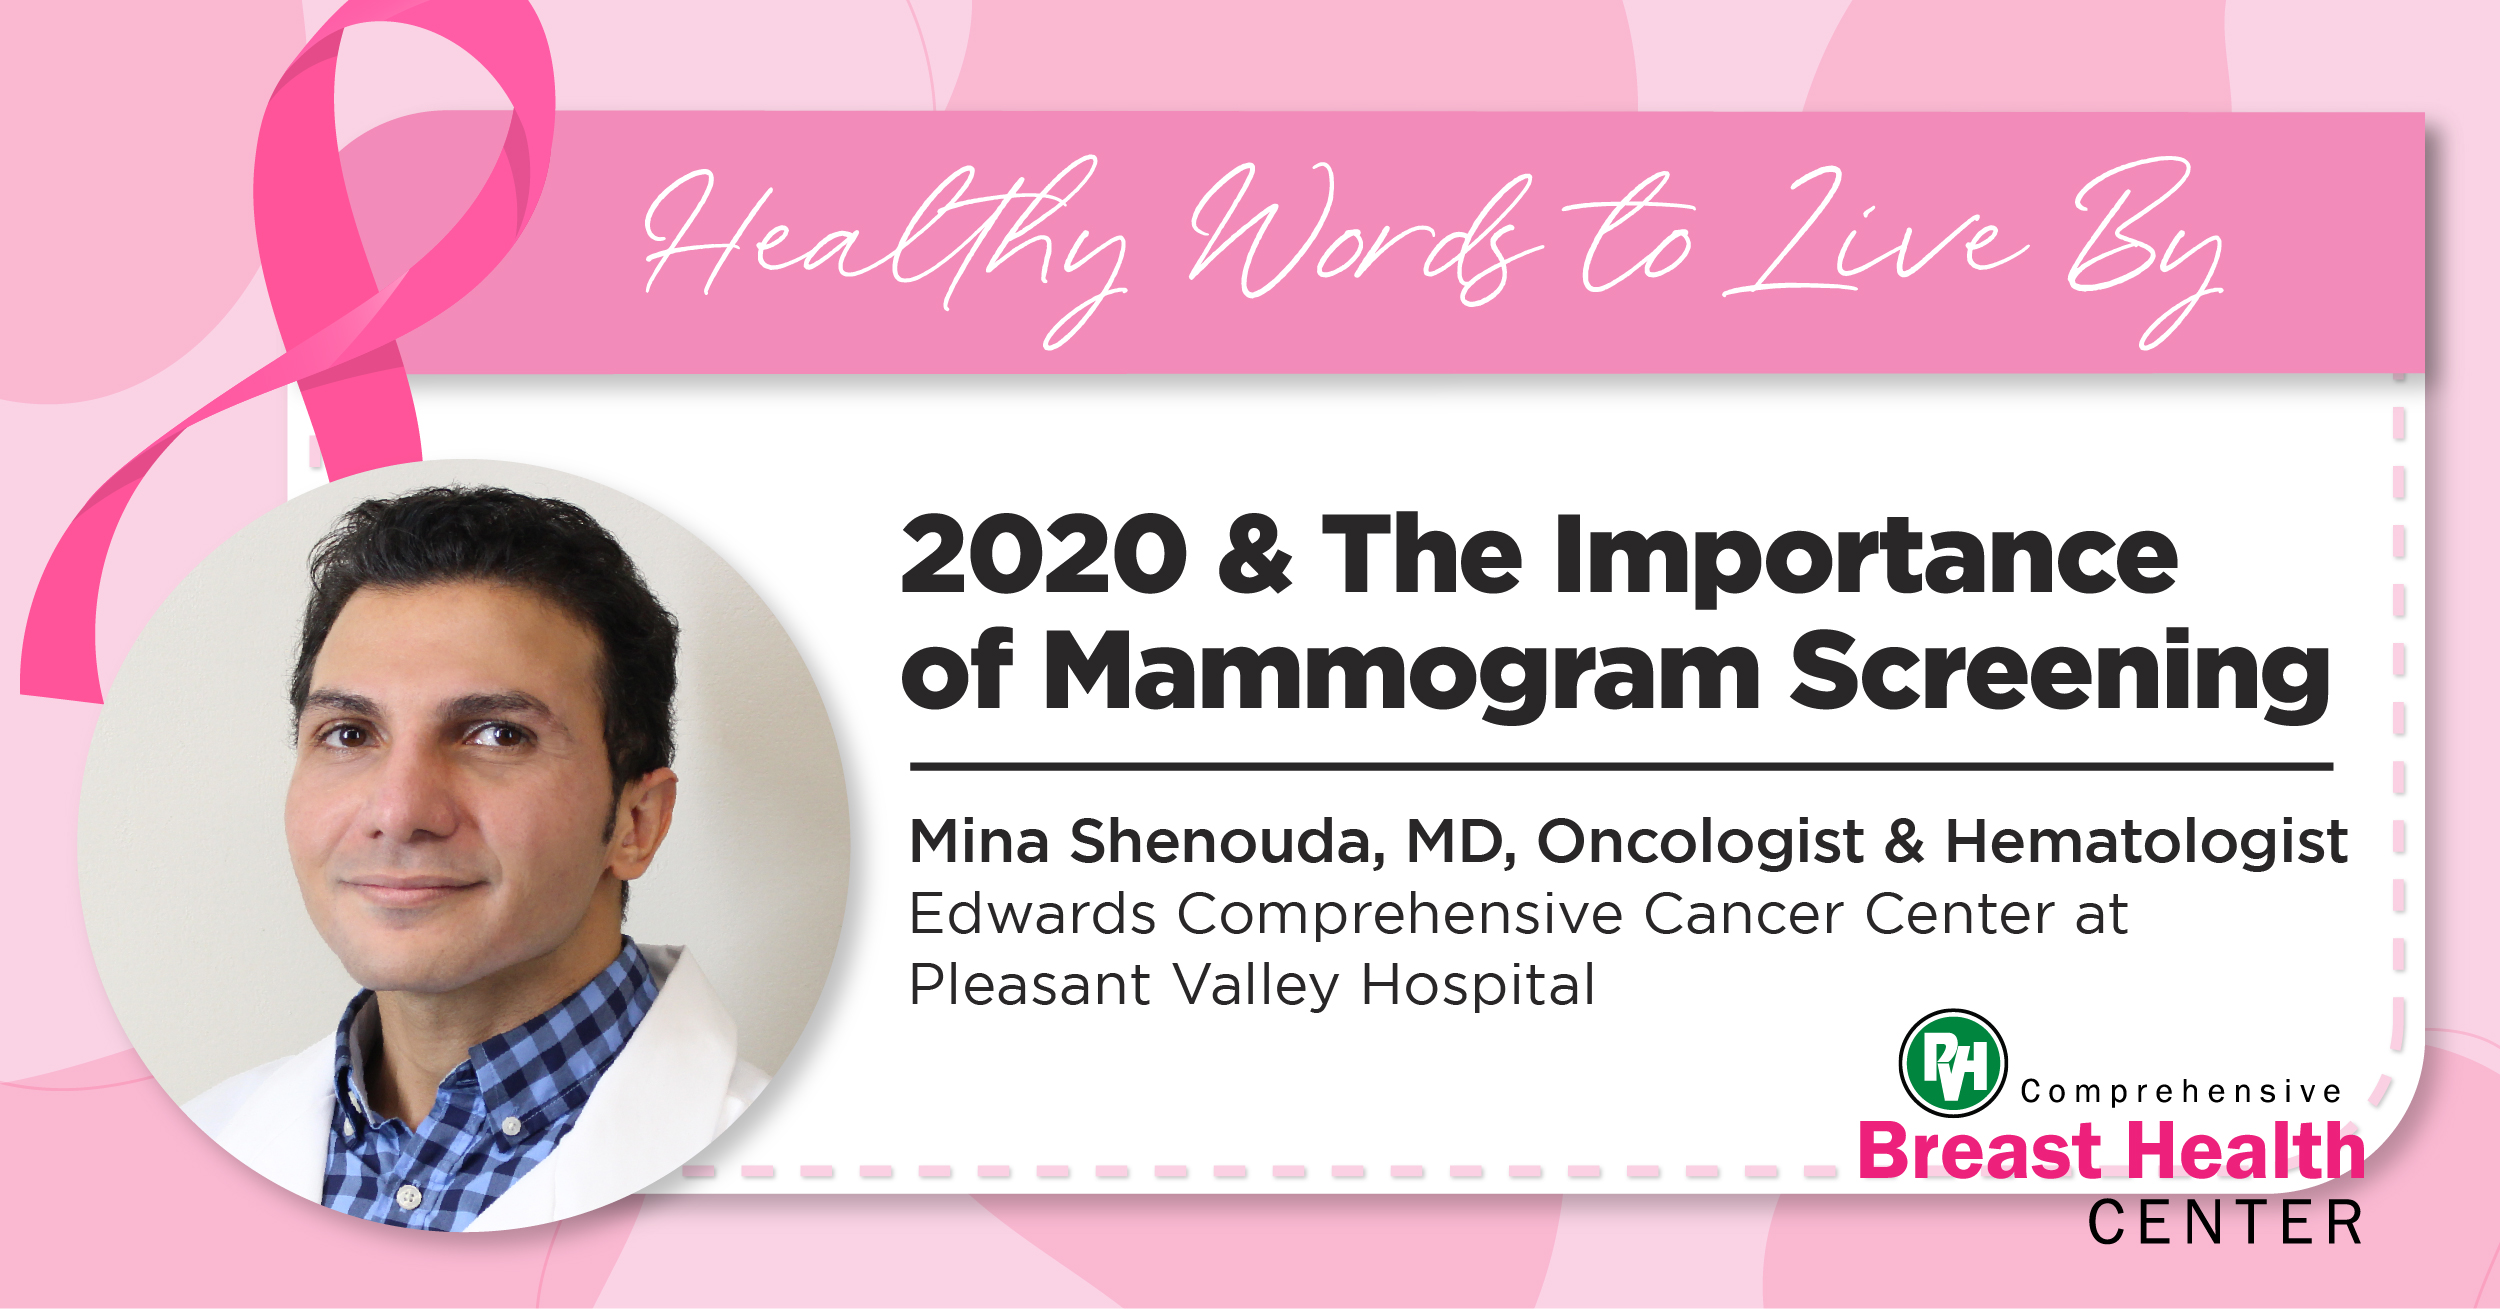 Healthy Words to Live By | 2020 & The Importance of Mammogram Screening | Mina Shenouda, MD, Oncologist & Hematologist Edwards Comprehensive Cancer Center at Pleasant Valley Hospital | Comprehensive Breast Health Center